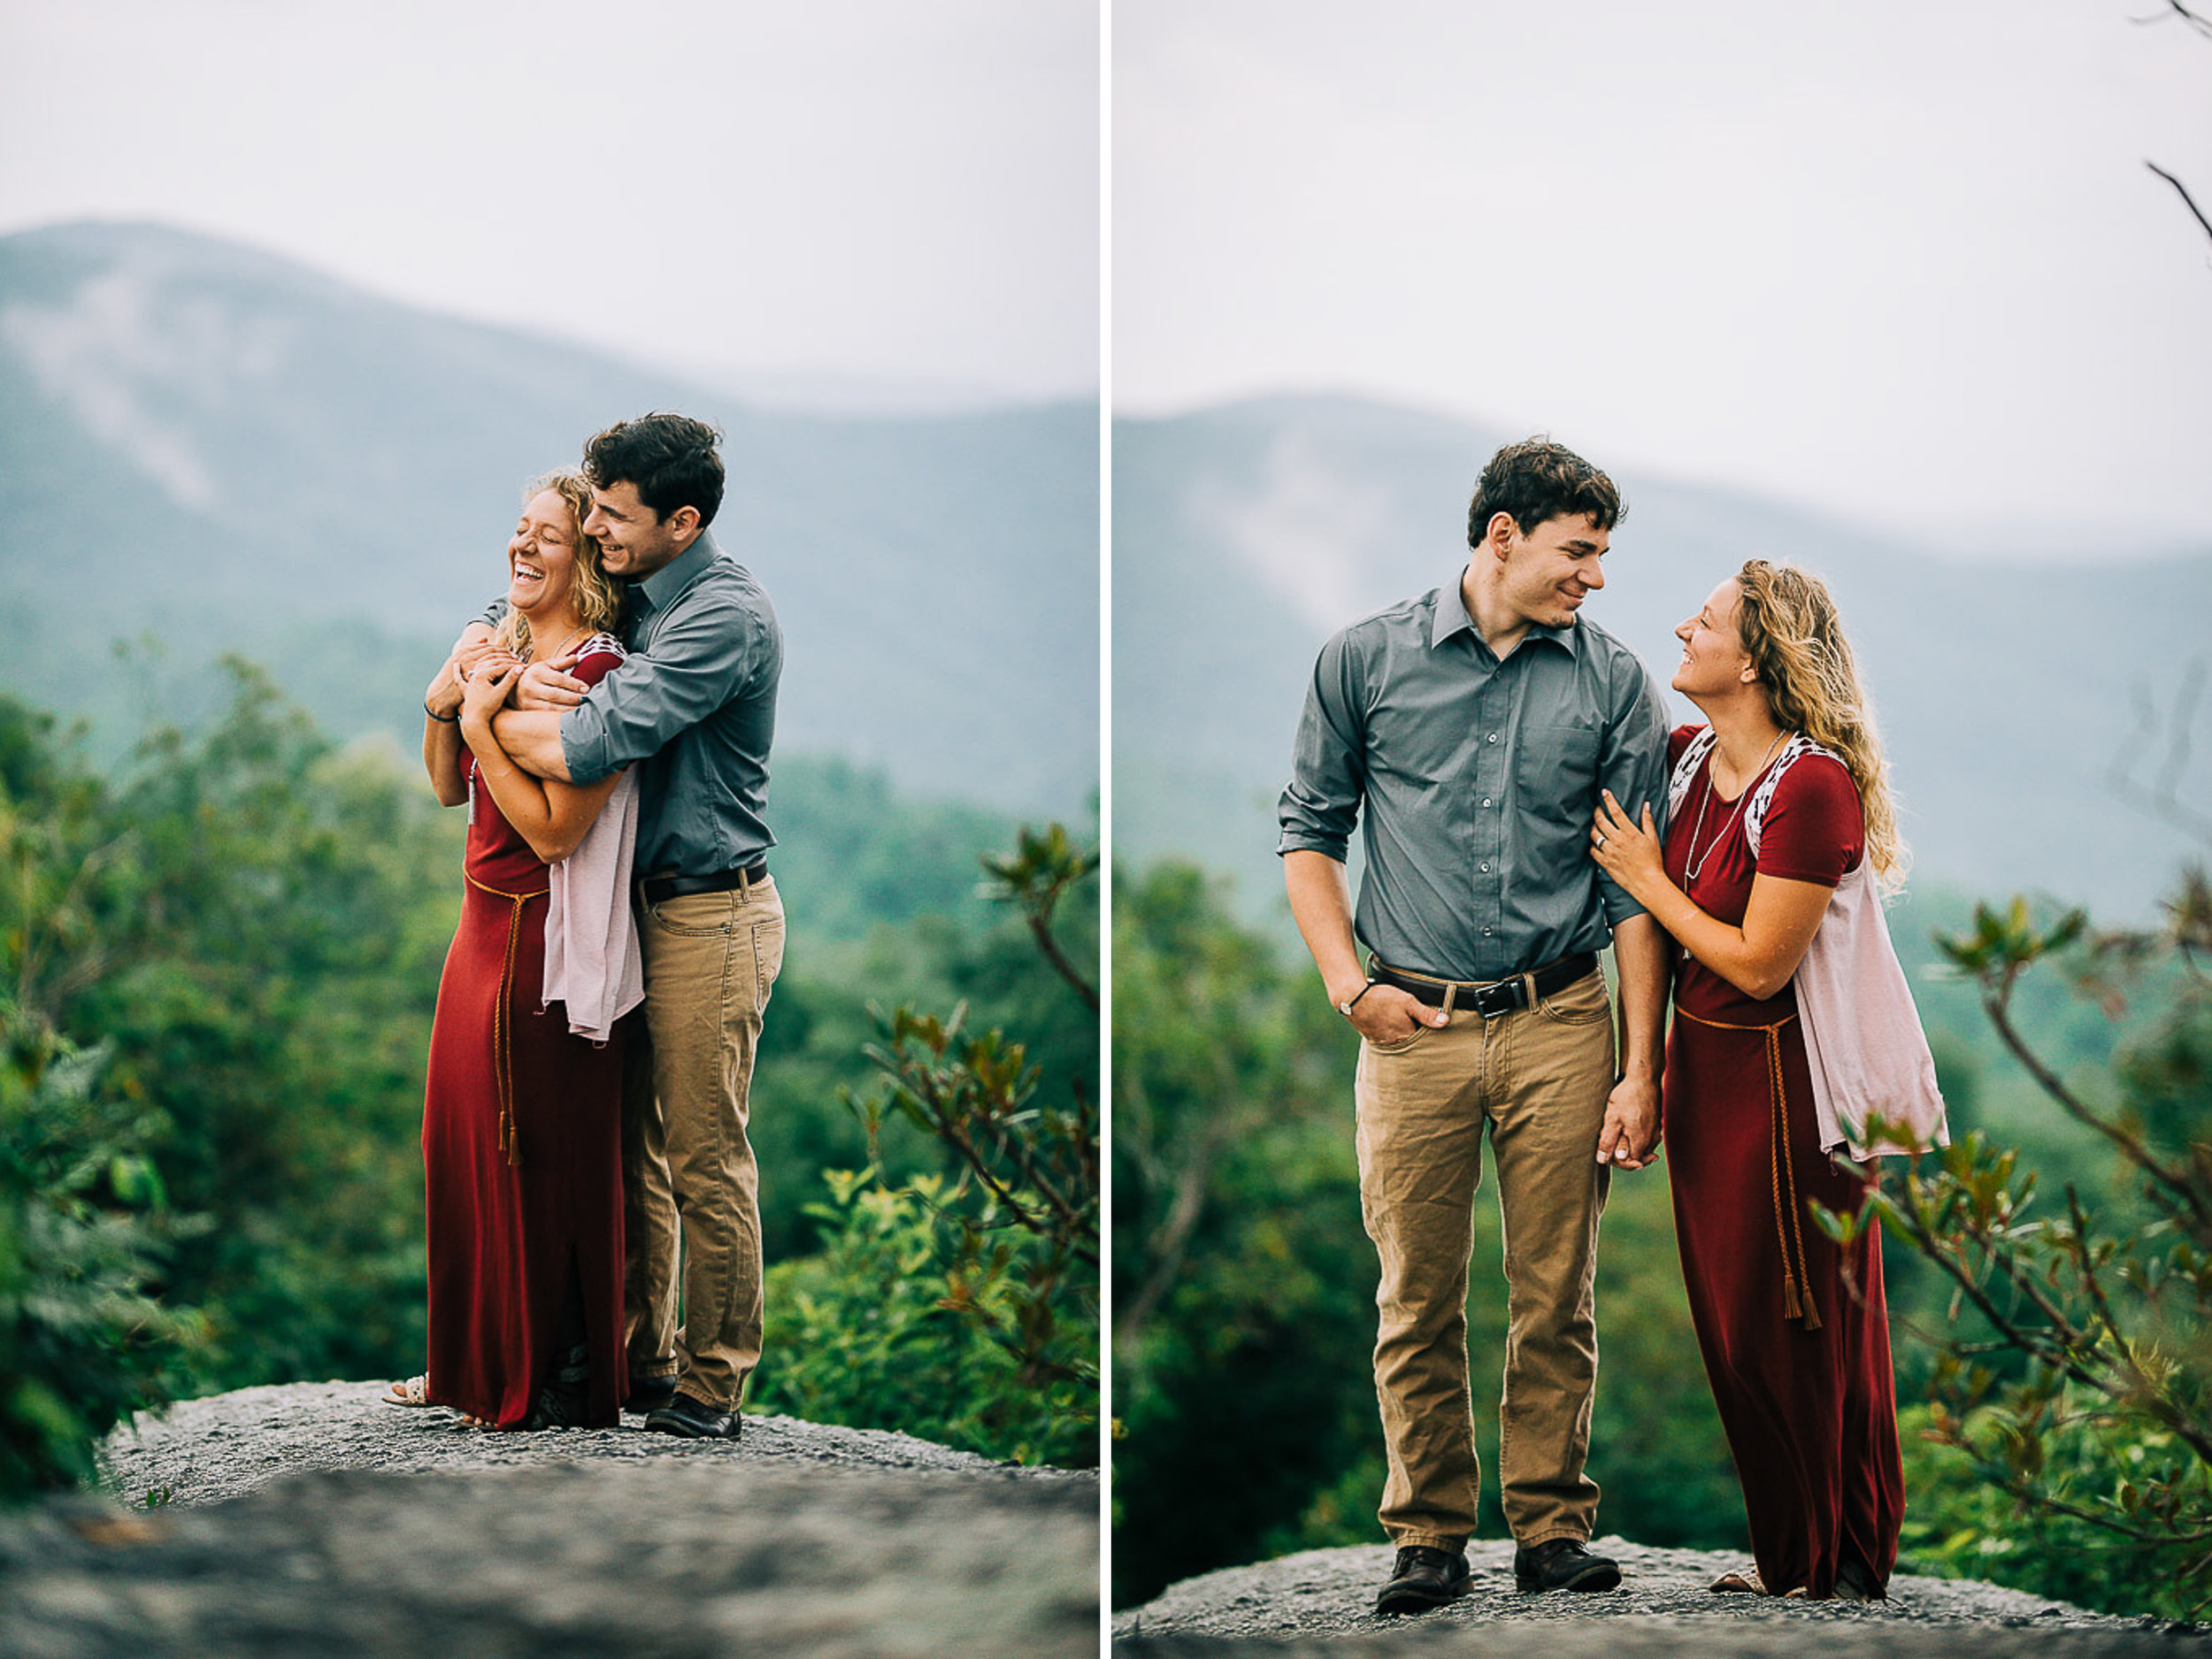 Mountain Engagement, Summer Engaement, Engaged, Engaement Portriats, Engagement Pictures, 08.jpg